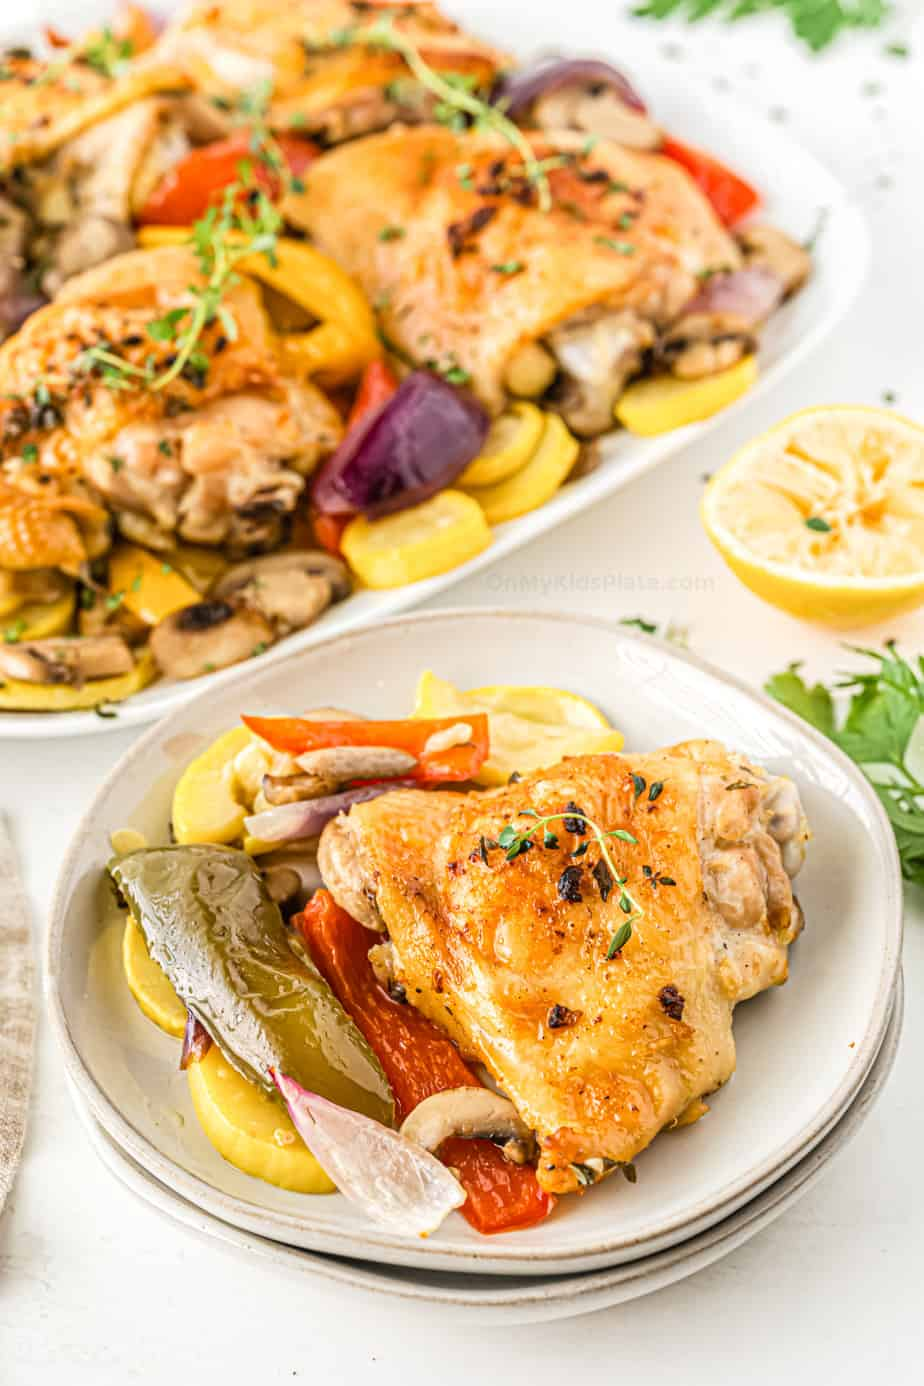 Baked Chicken Thighs on a plate  with peppers, onions, squash and mushrooms. A sheetpan full of chicken and vegetables in the background.